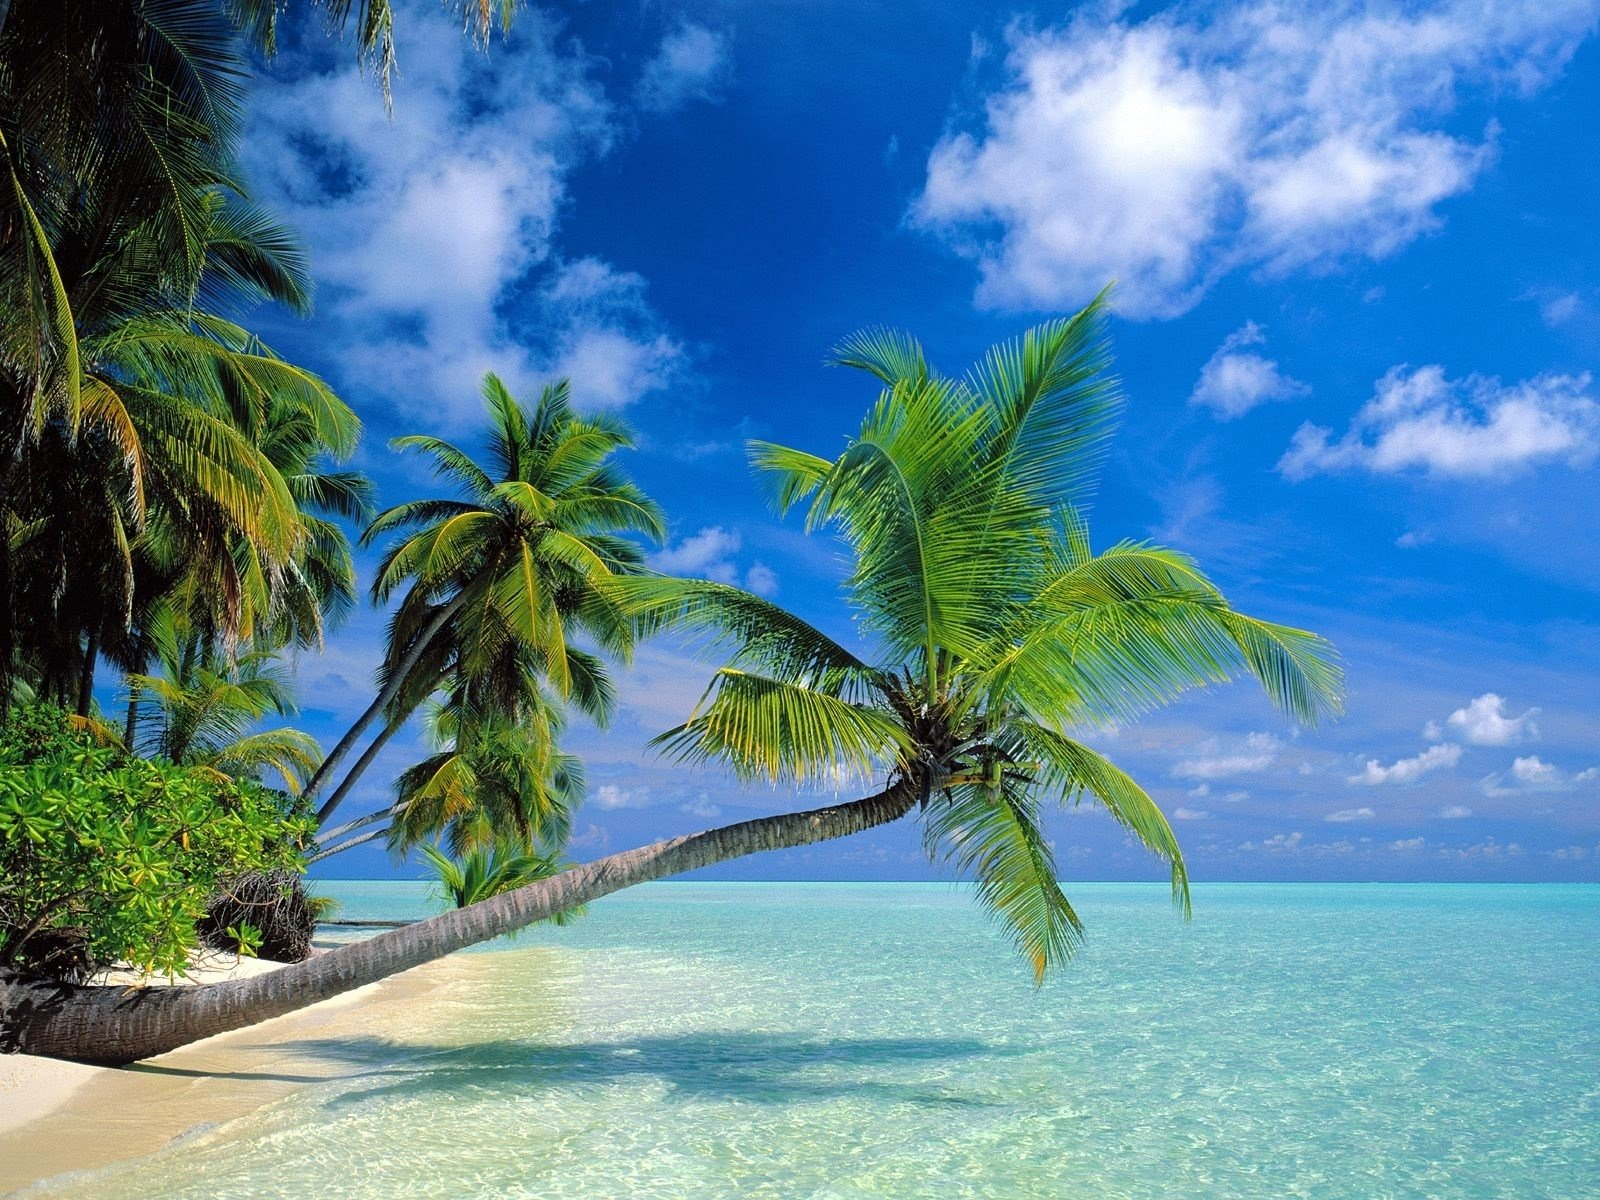 Tropical Beaches With Palm Trees S Wallpaper Free Is Cool Wallpapers